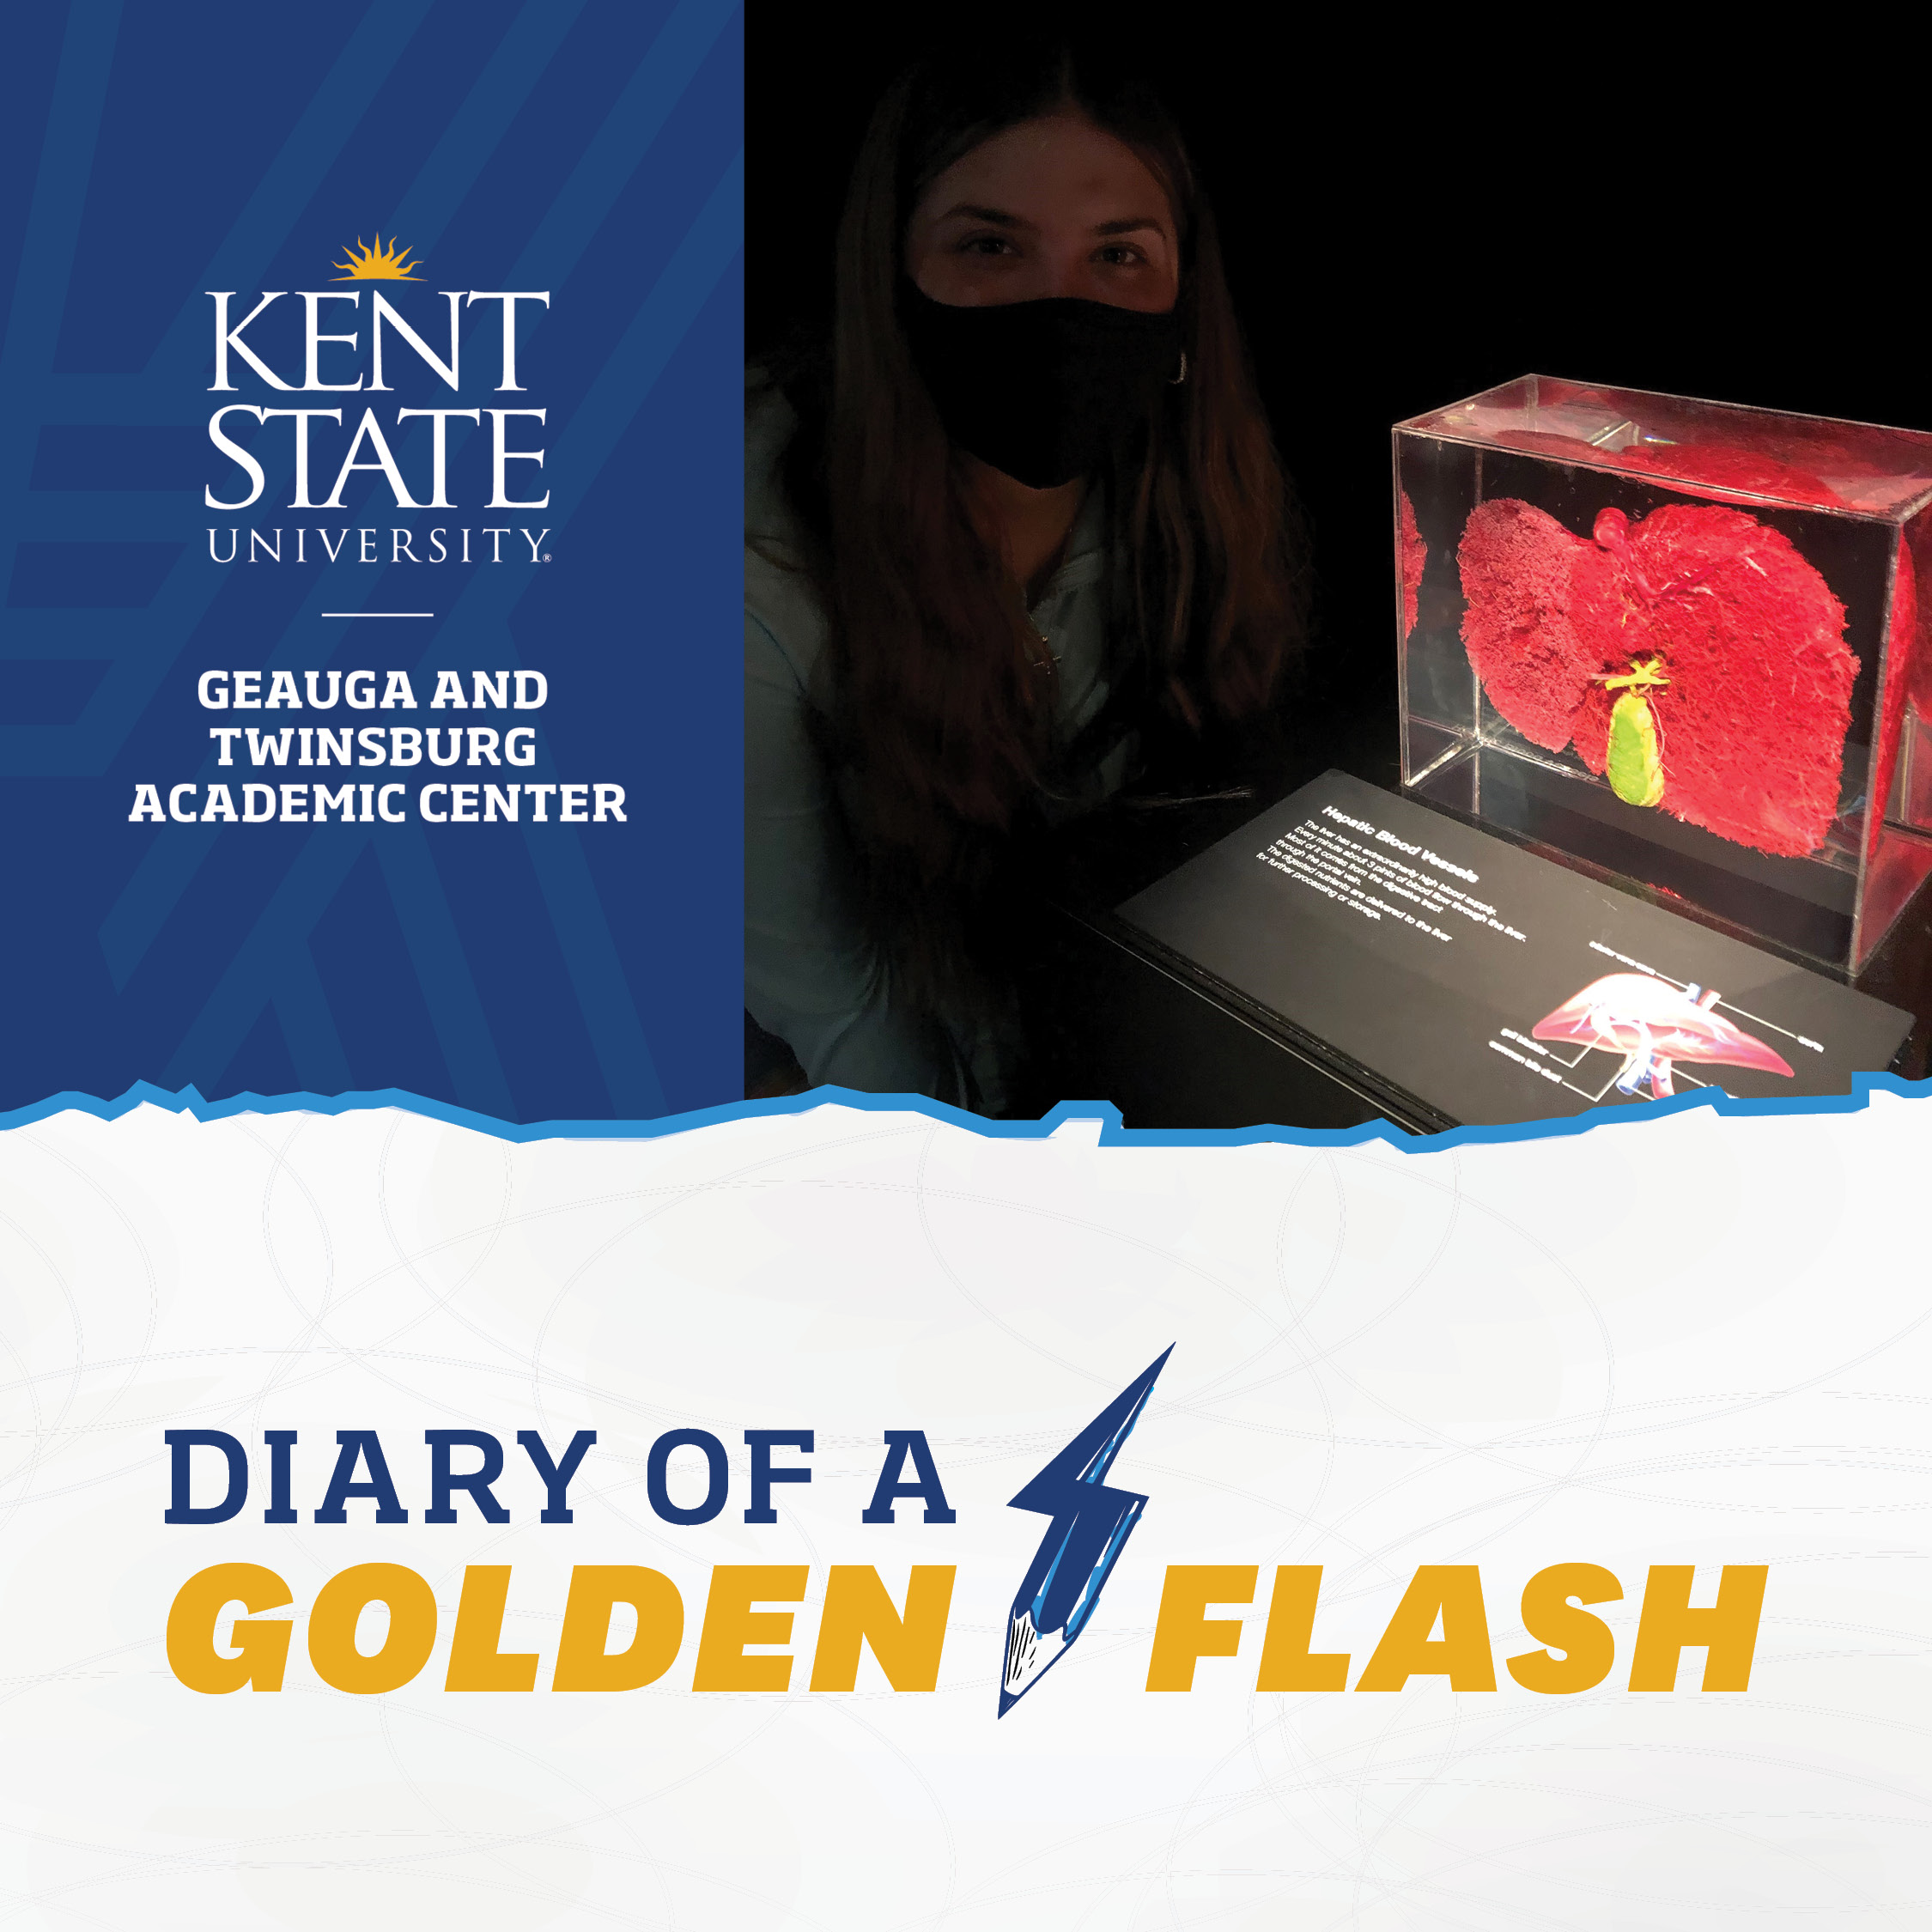 Diary of a Golden Flash Vladis Alimova